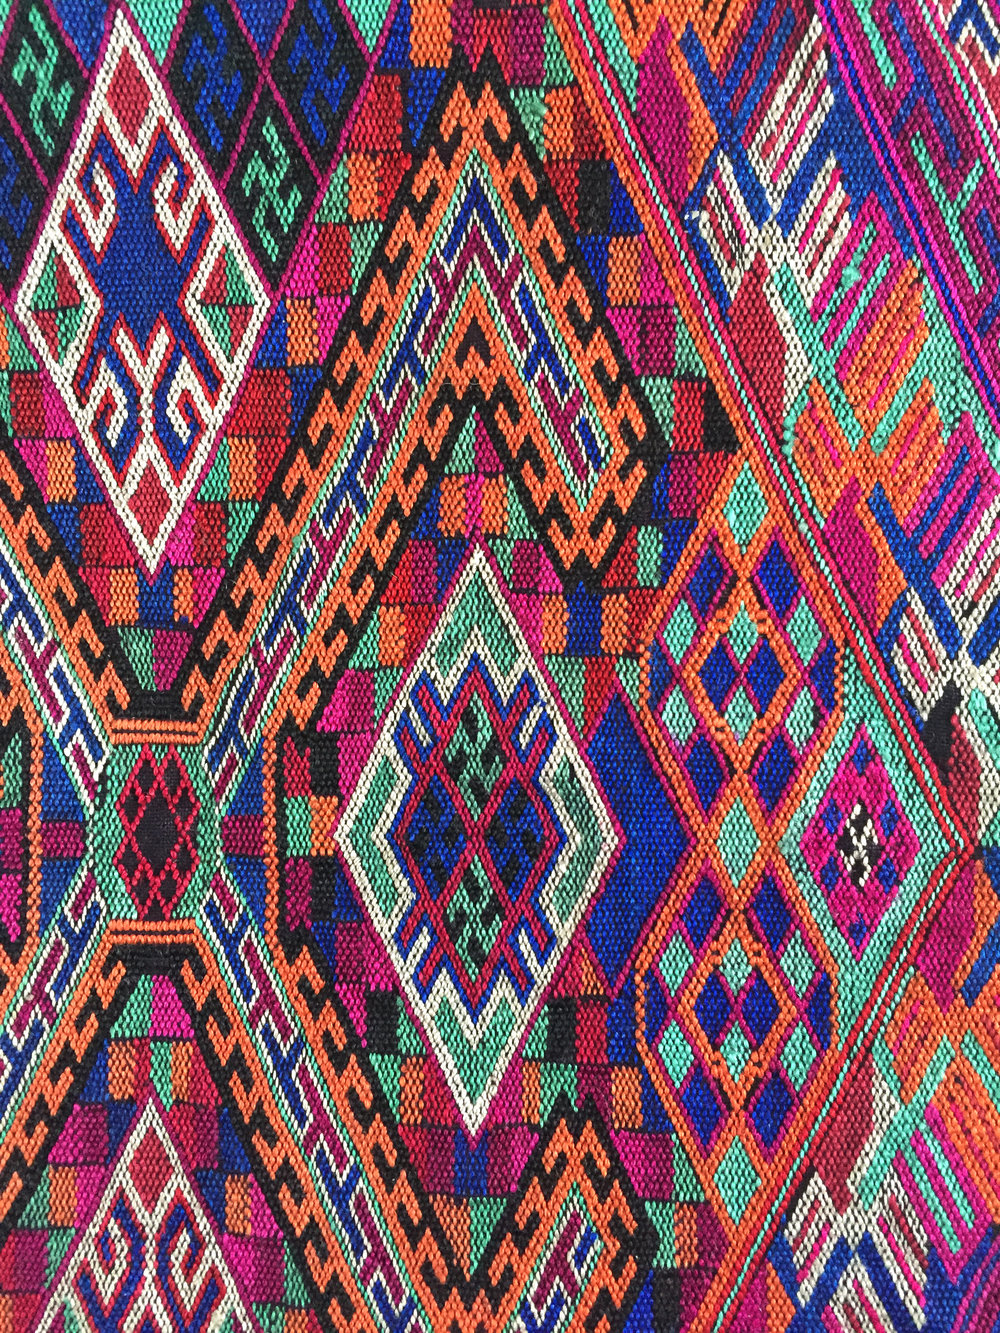 Miao embroidery with switchback darning stitch (數紗绣) from Guizhou, China. Yang Wen Bin Collection.